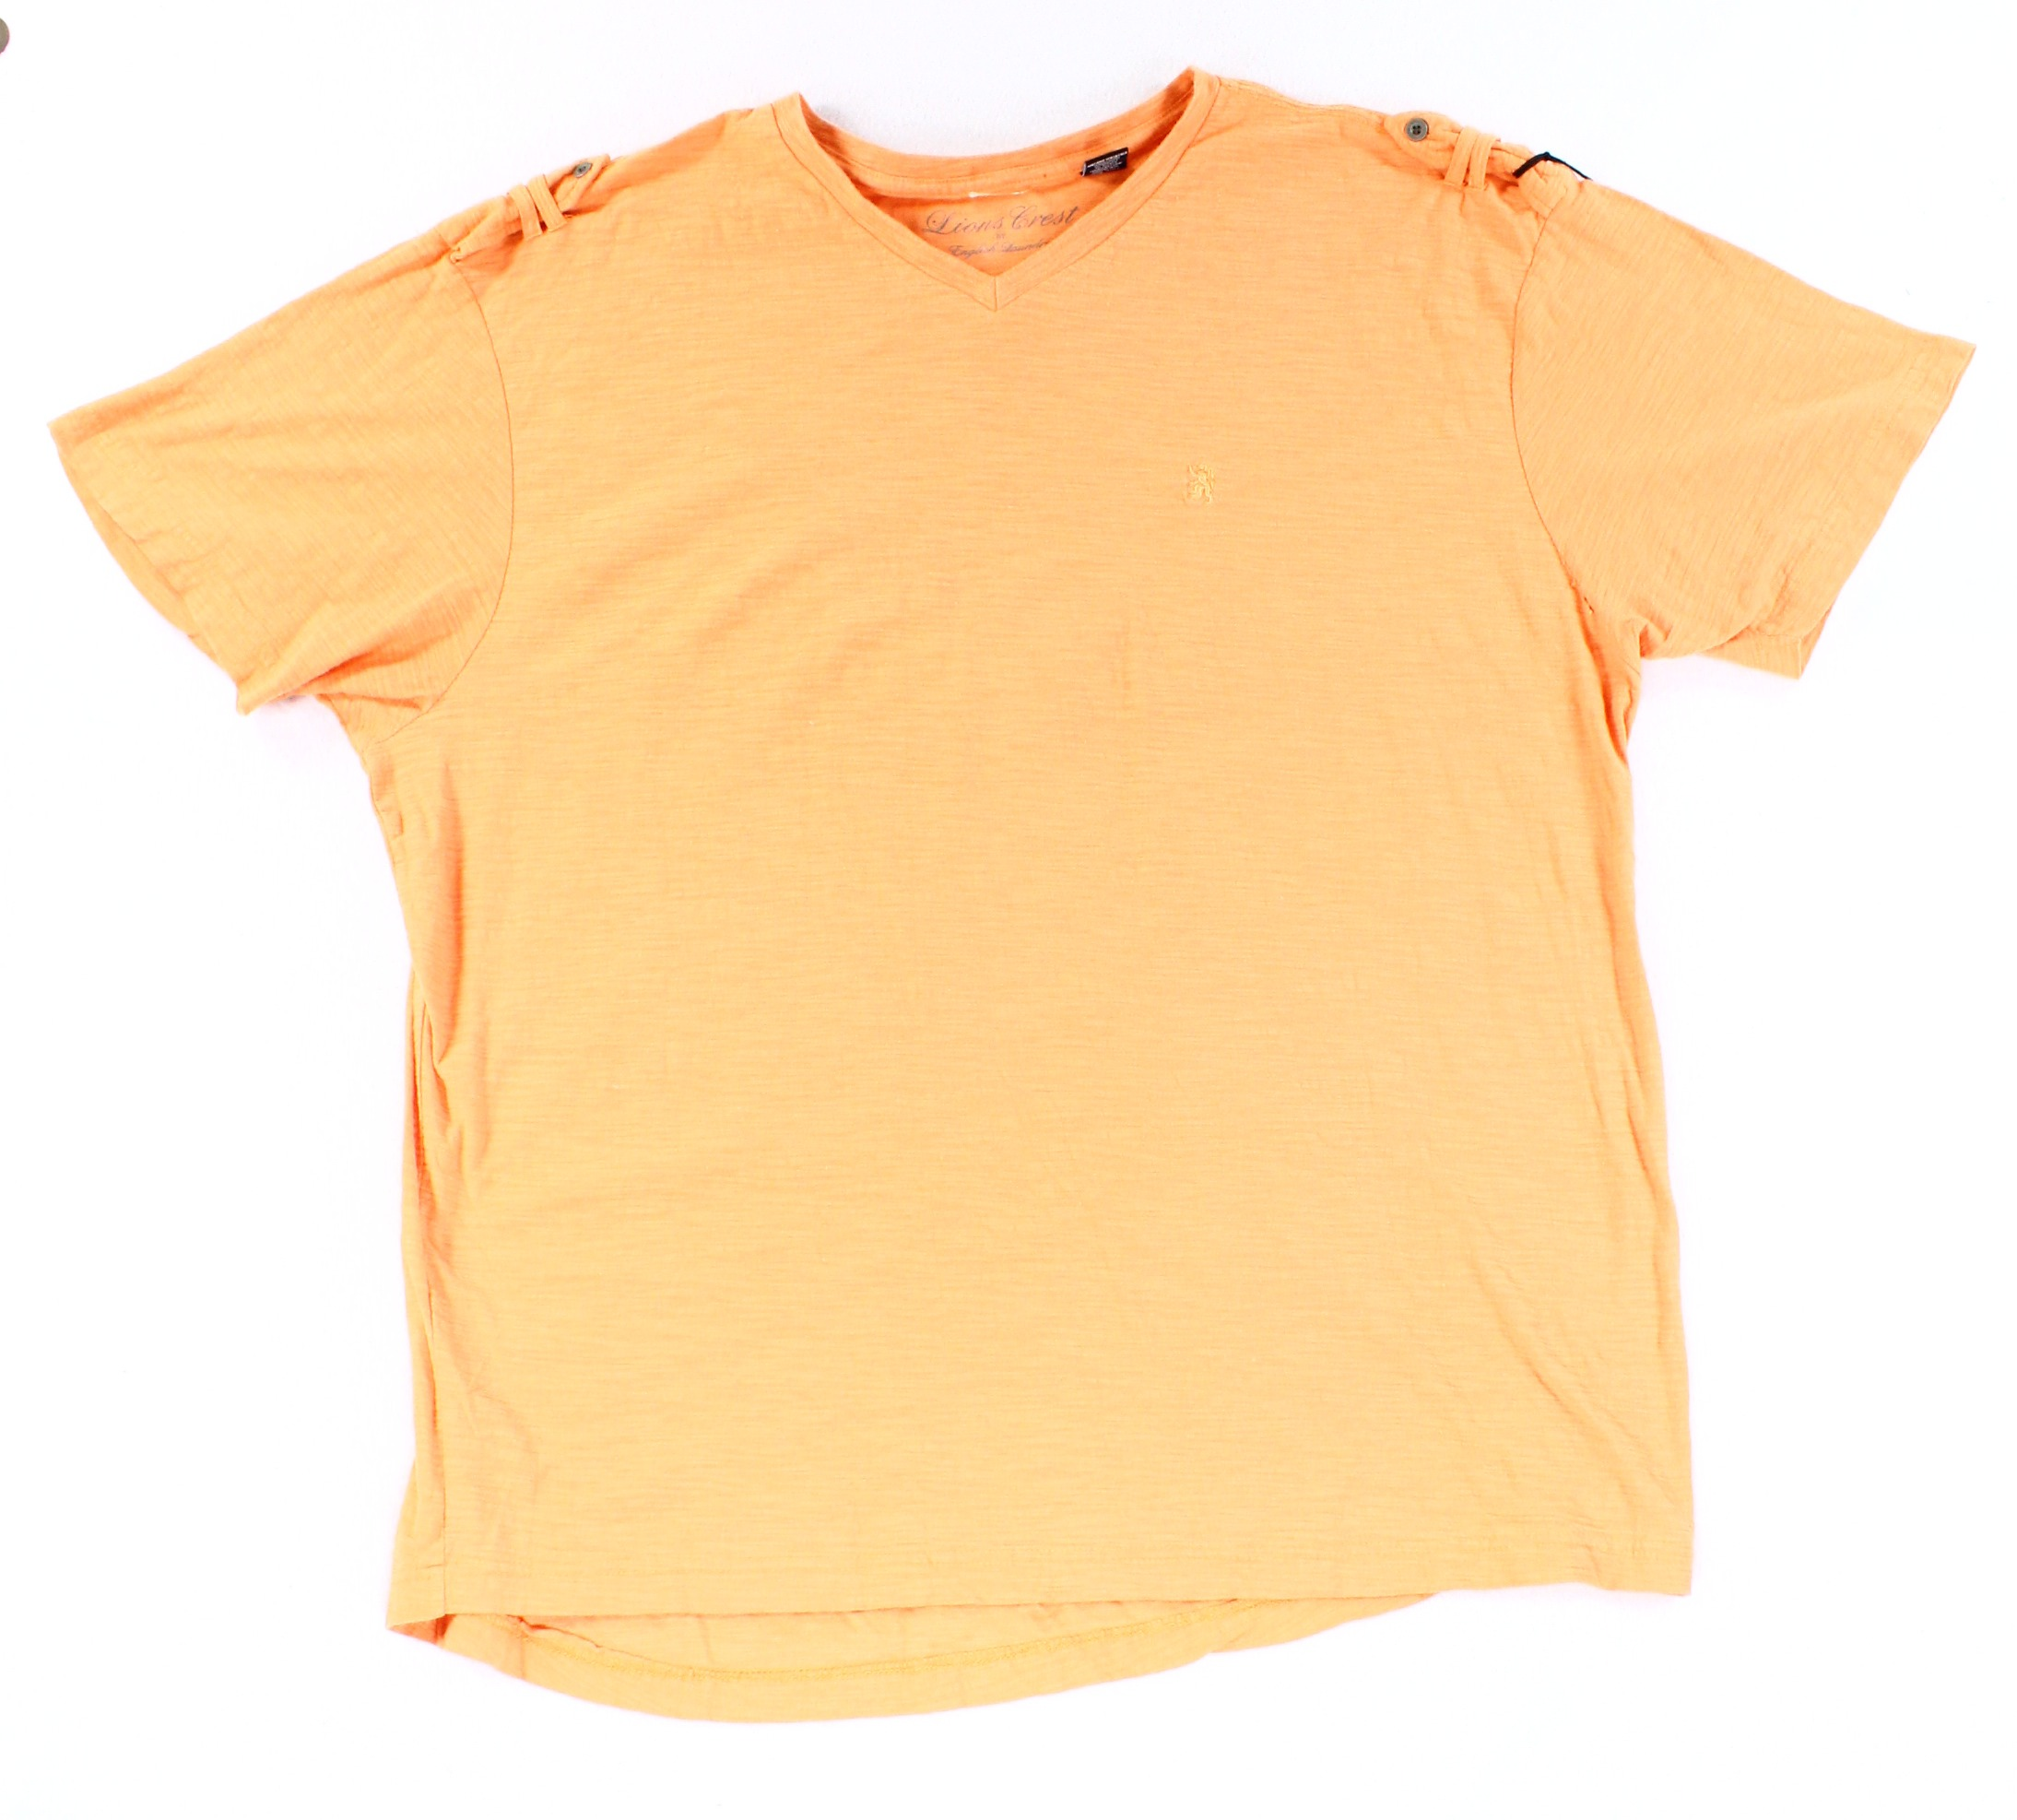 Lions crest by english laundry new orange men big 2x tee for Van heusen studio shirts big and tall